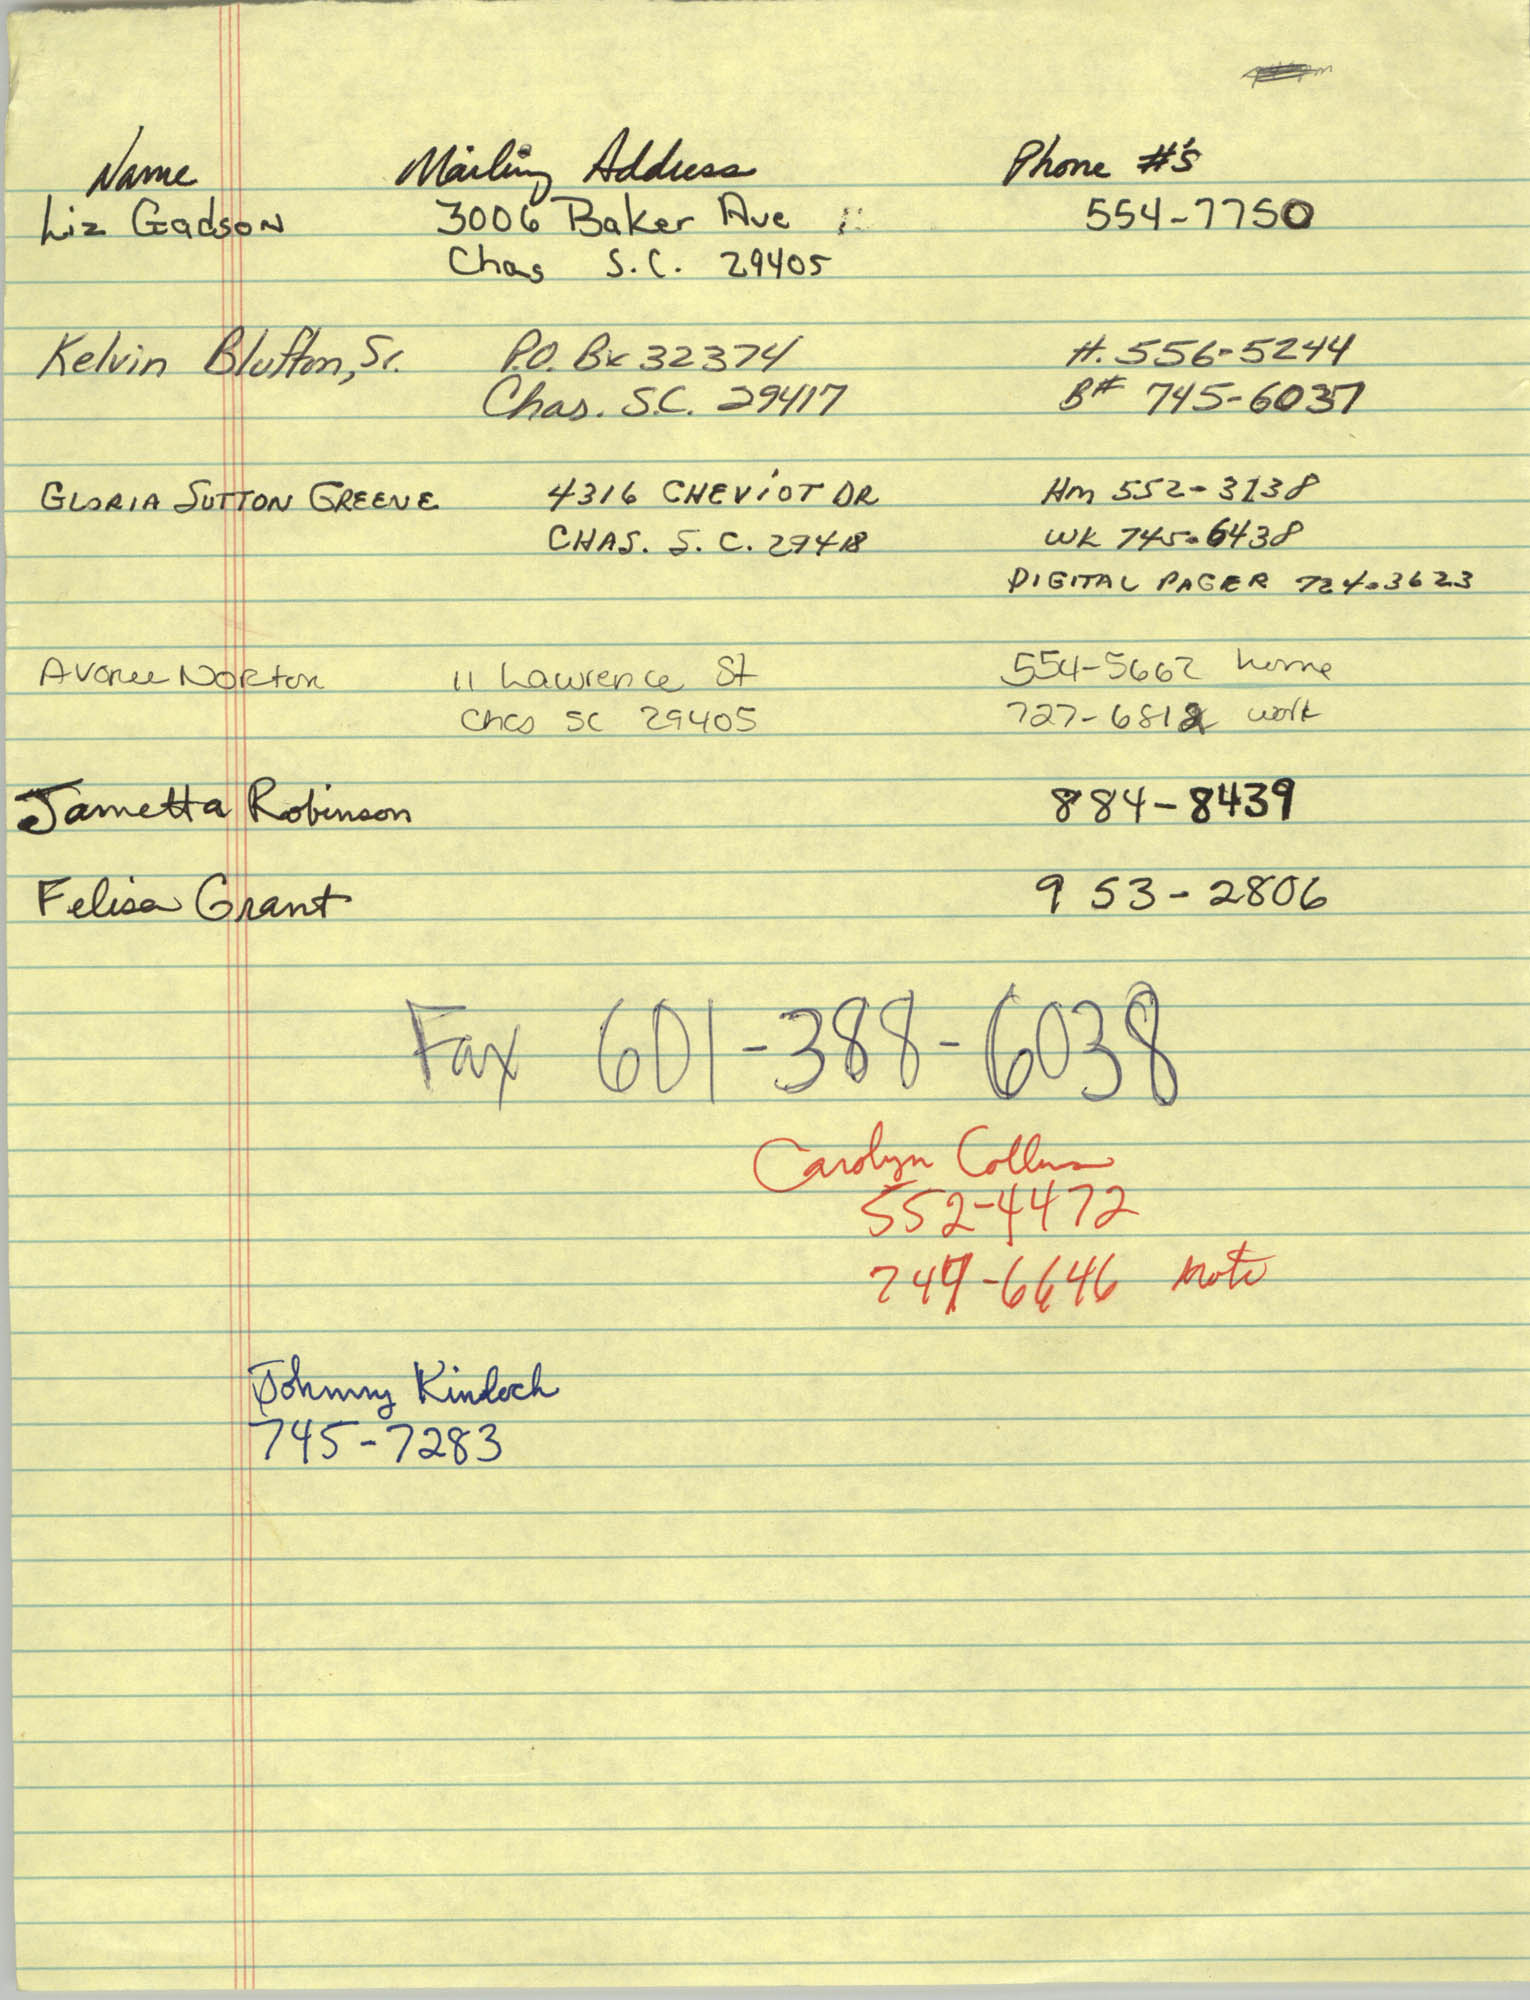 Handwritten Contact Information